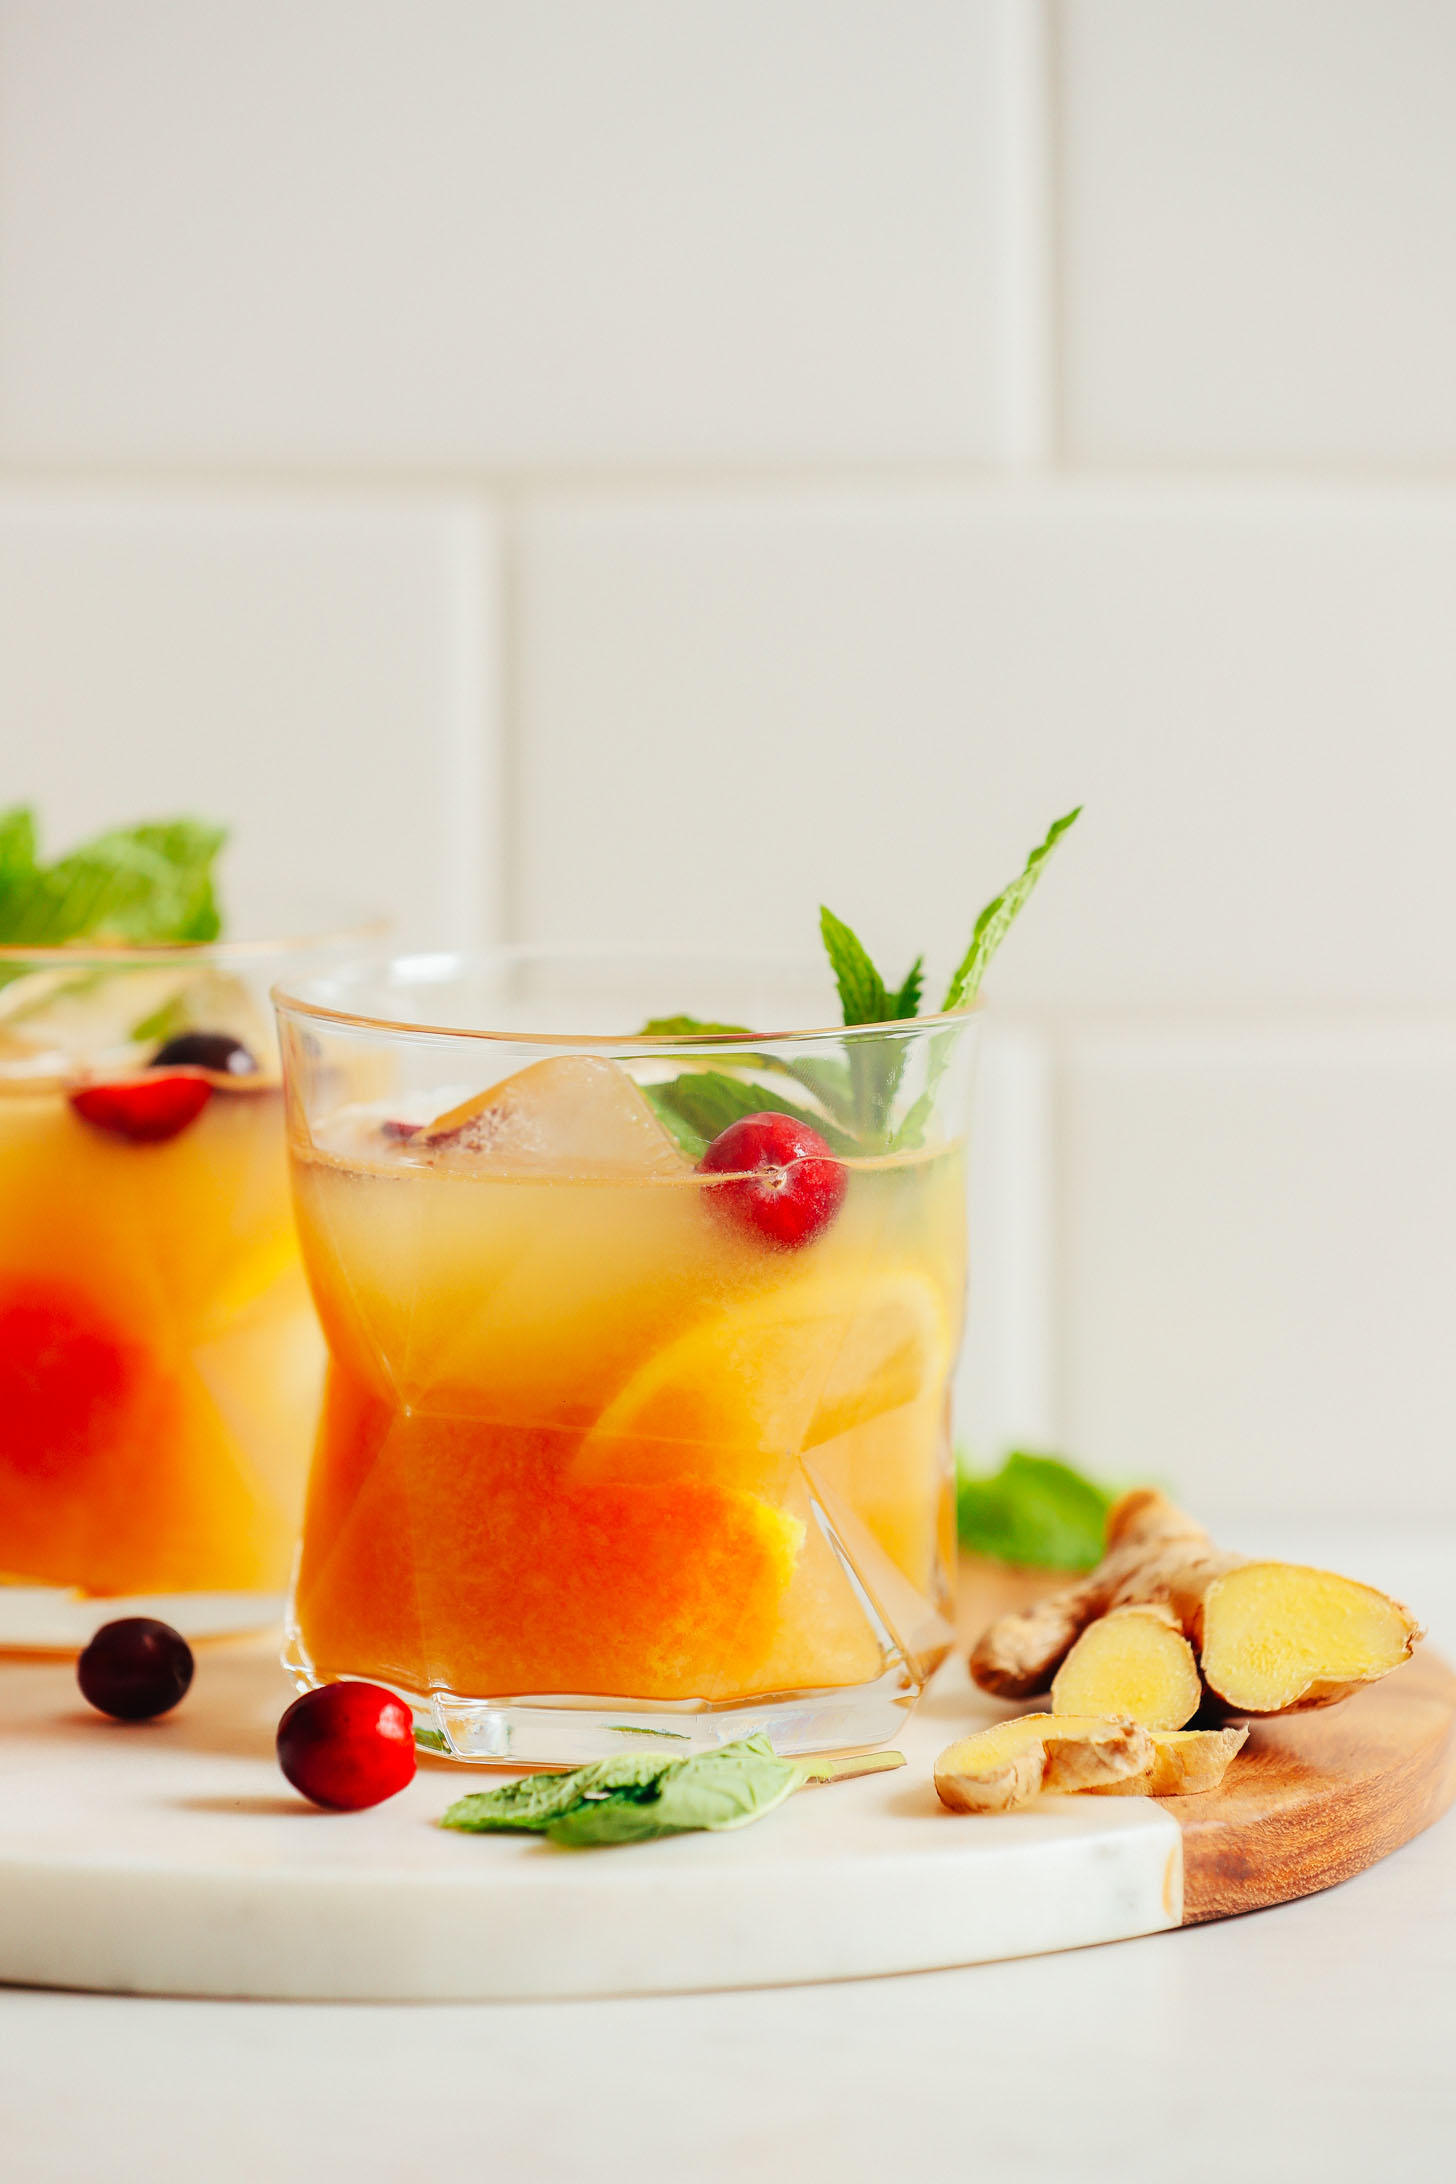 Close up shot of an Orange Whiskey Ginger with Mint and garnished with fresh cranberries